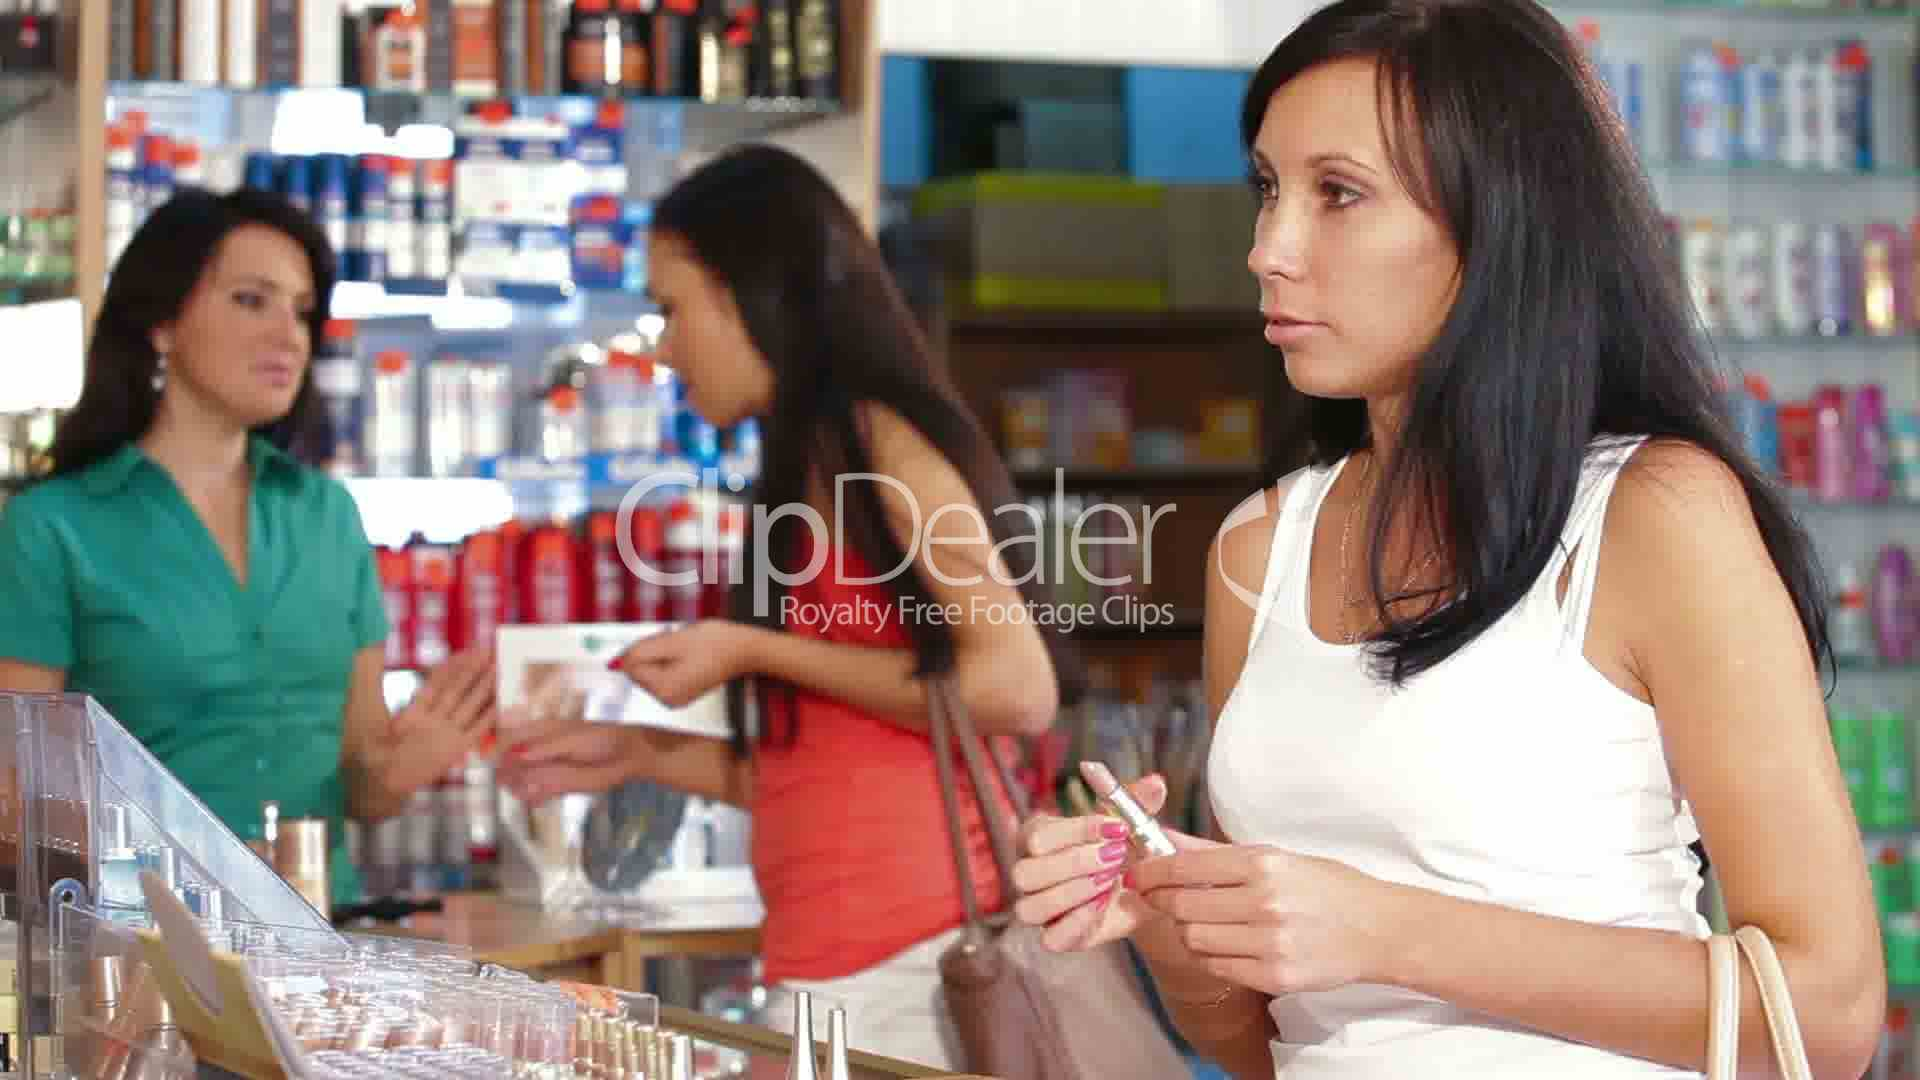 buying behaviour of women consumer in cosmetic category This research is to investigate hong kong's young female consumer buying behavior towards cosmetics in this chapter, the the scope of study will be narrowed to color cosmetics and young generation due to research limitations and many women are wearing cosmetics.